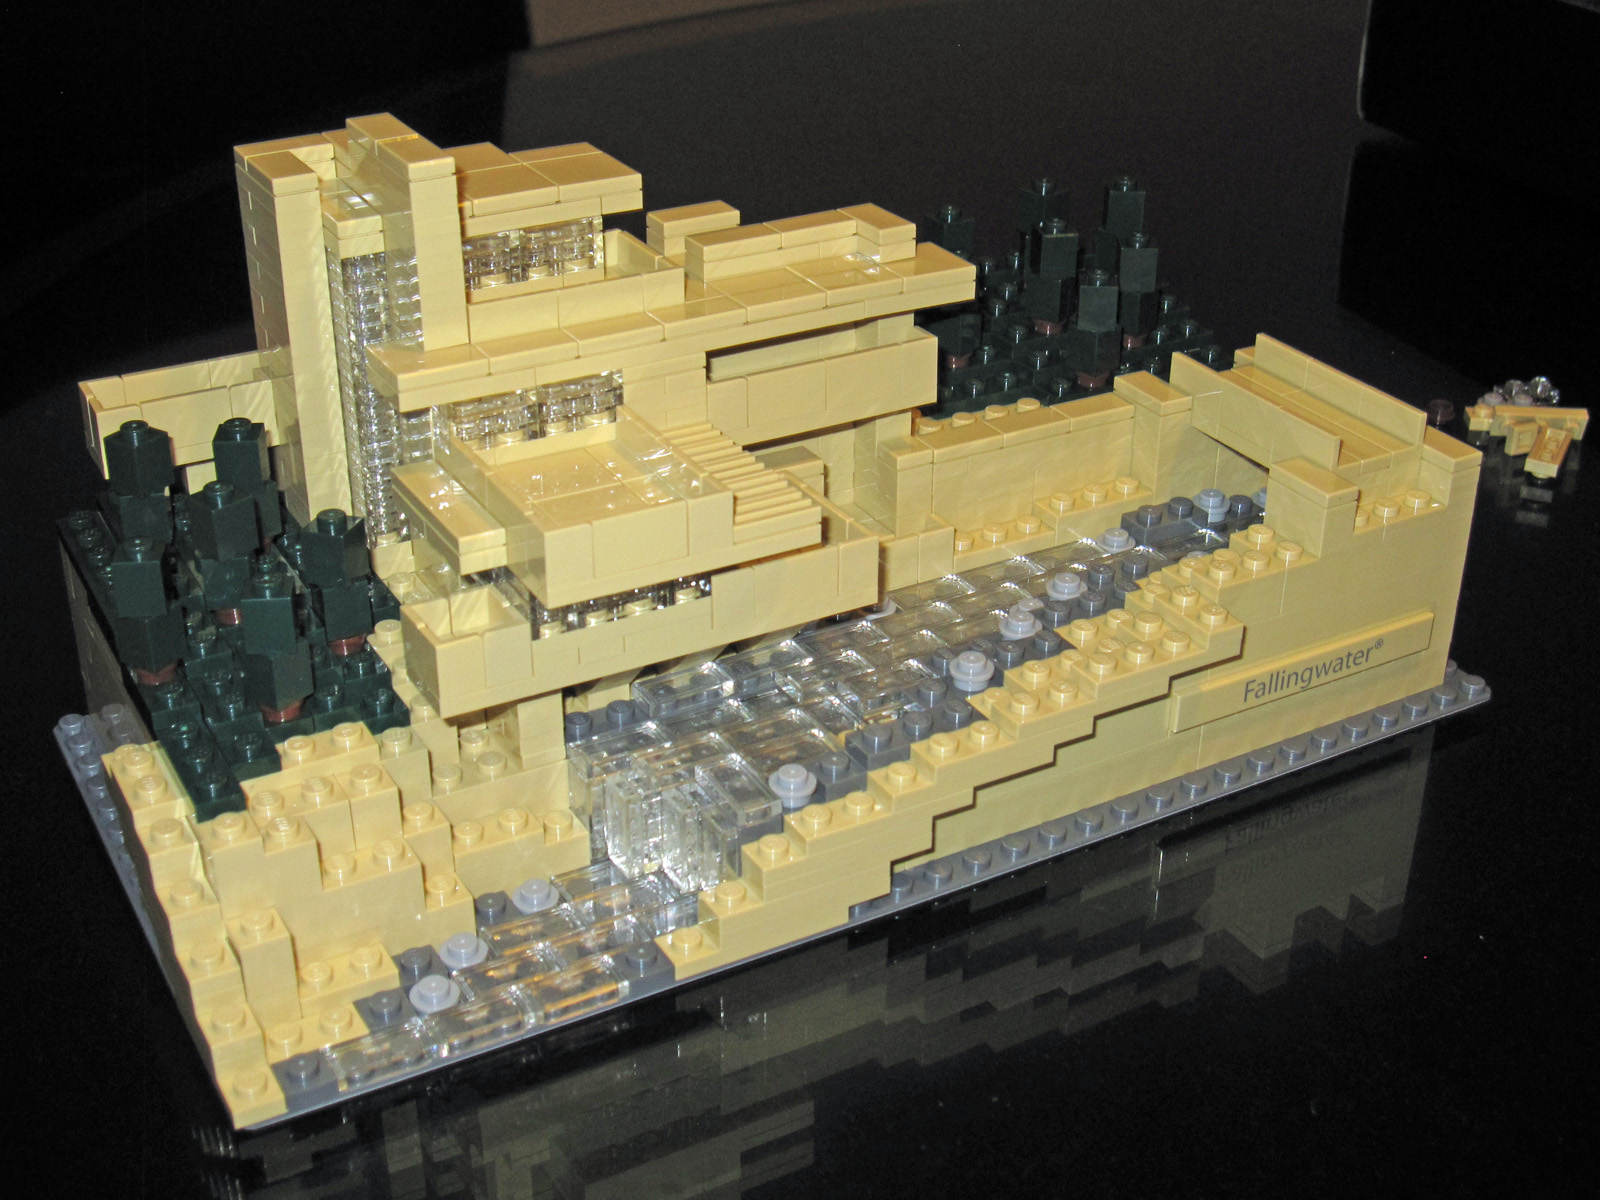 File lego architecture 21005 fallingwater 7331205756 jpg - Falling waters lego ...